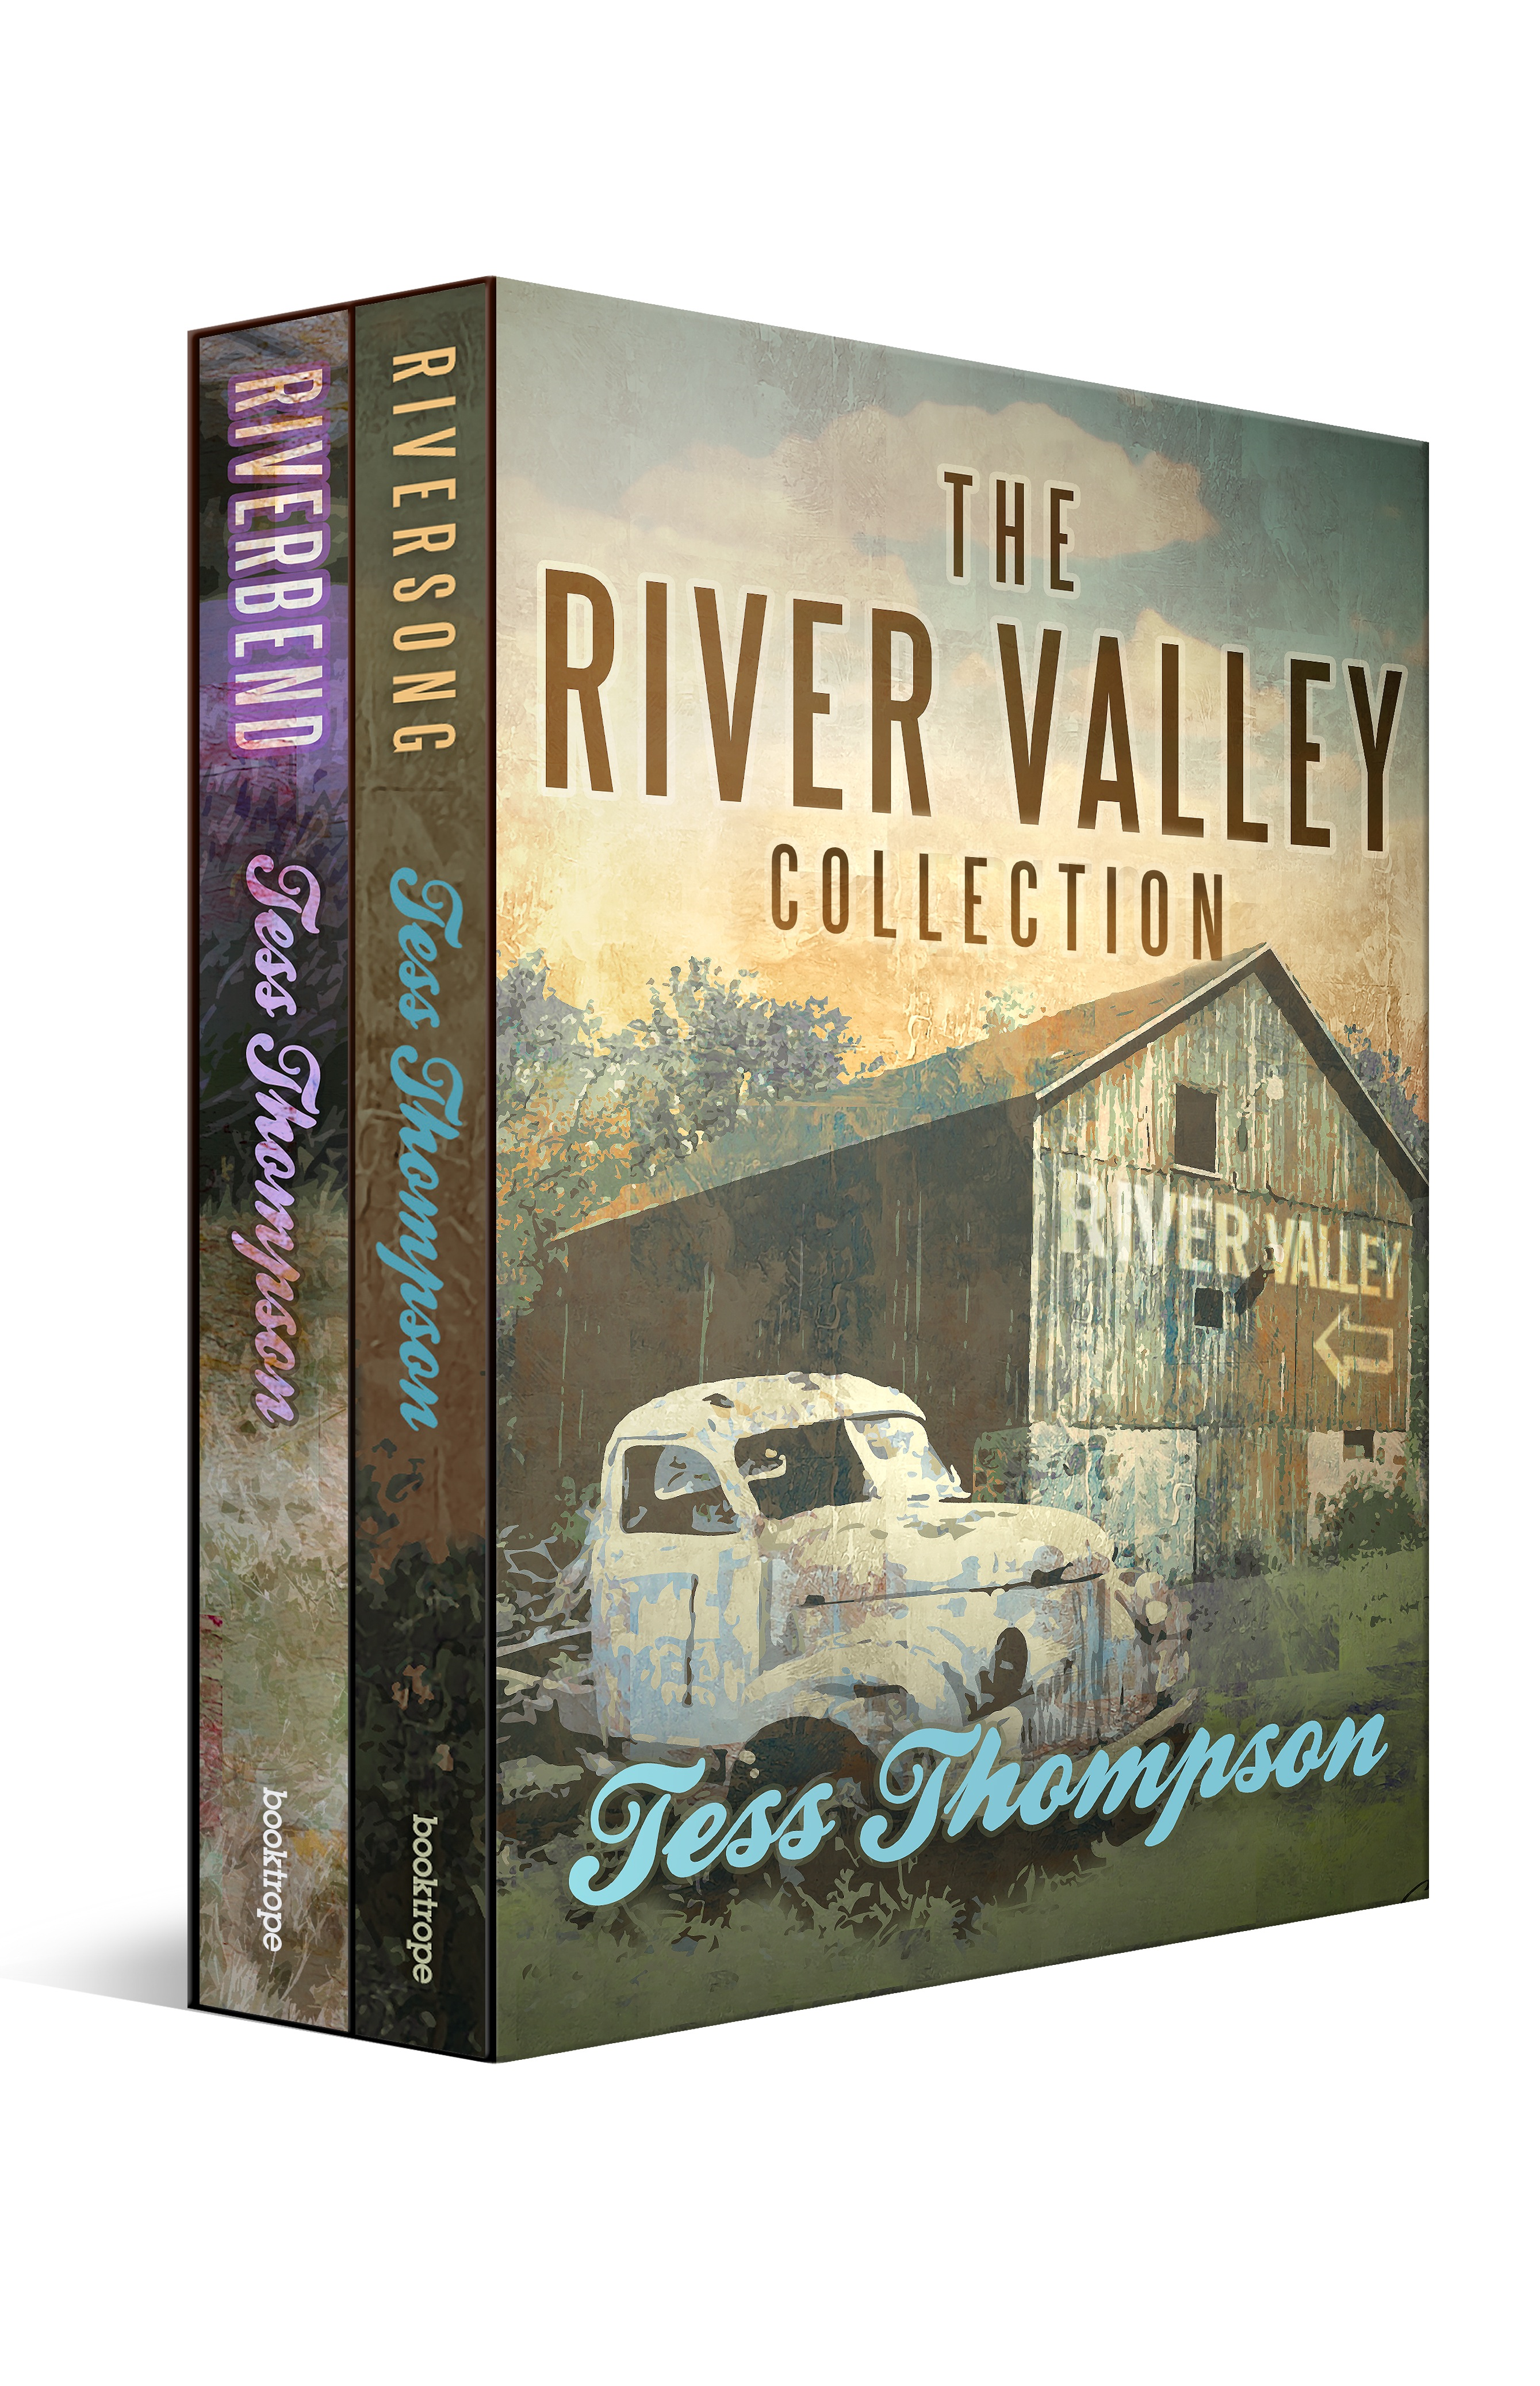 The River Valley Collection